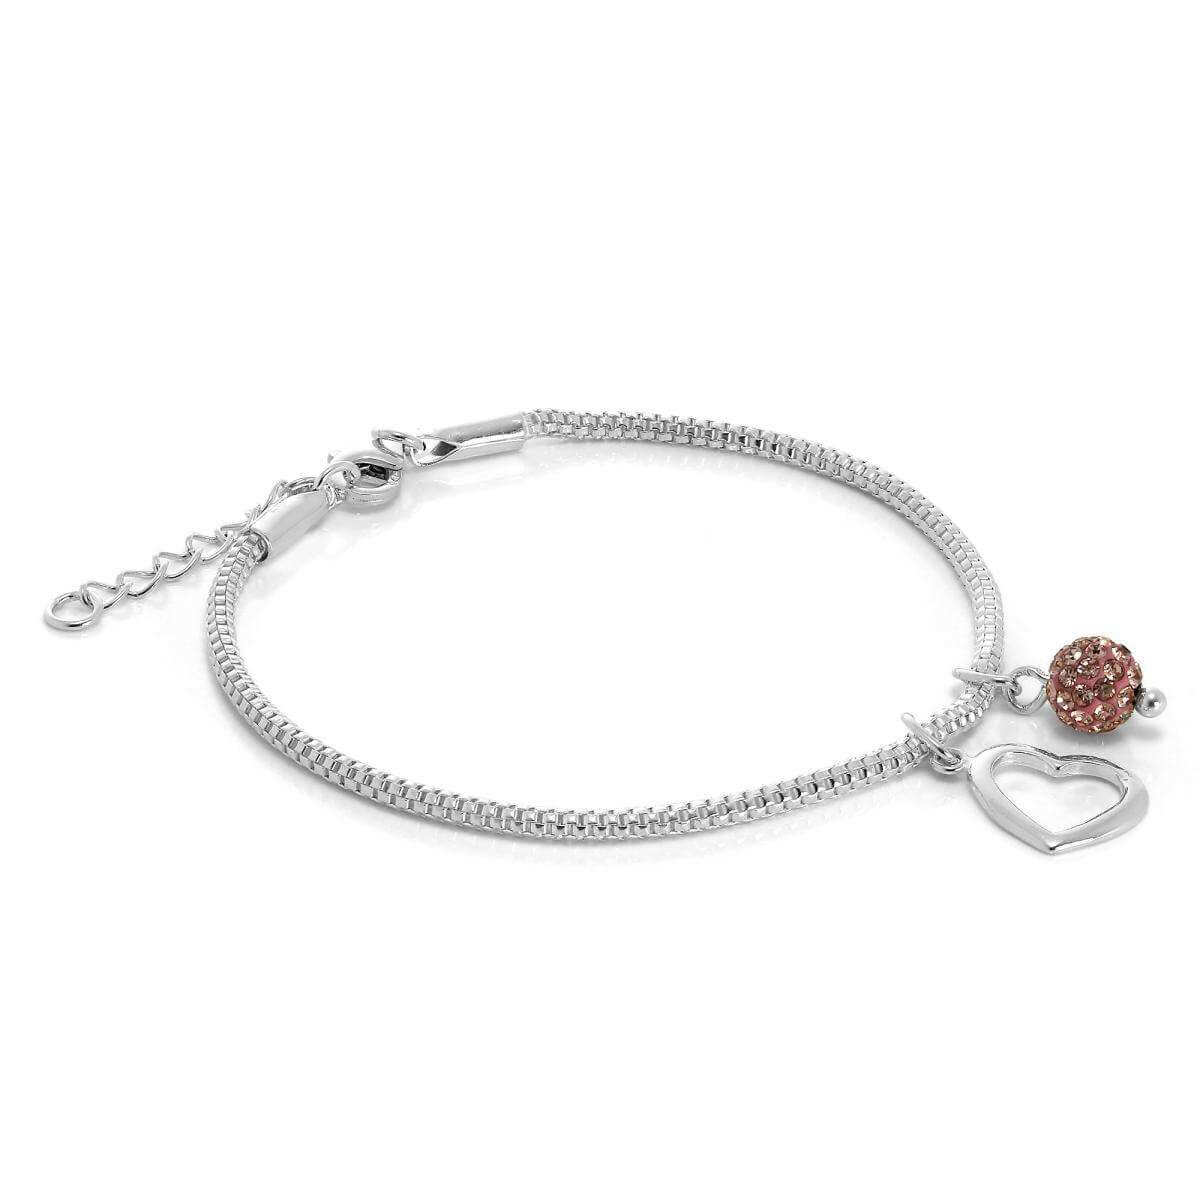 Sterling Silver Snake Bracelet with Open Heart & CZ Crystal Ball Charms